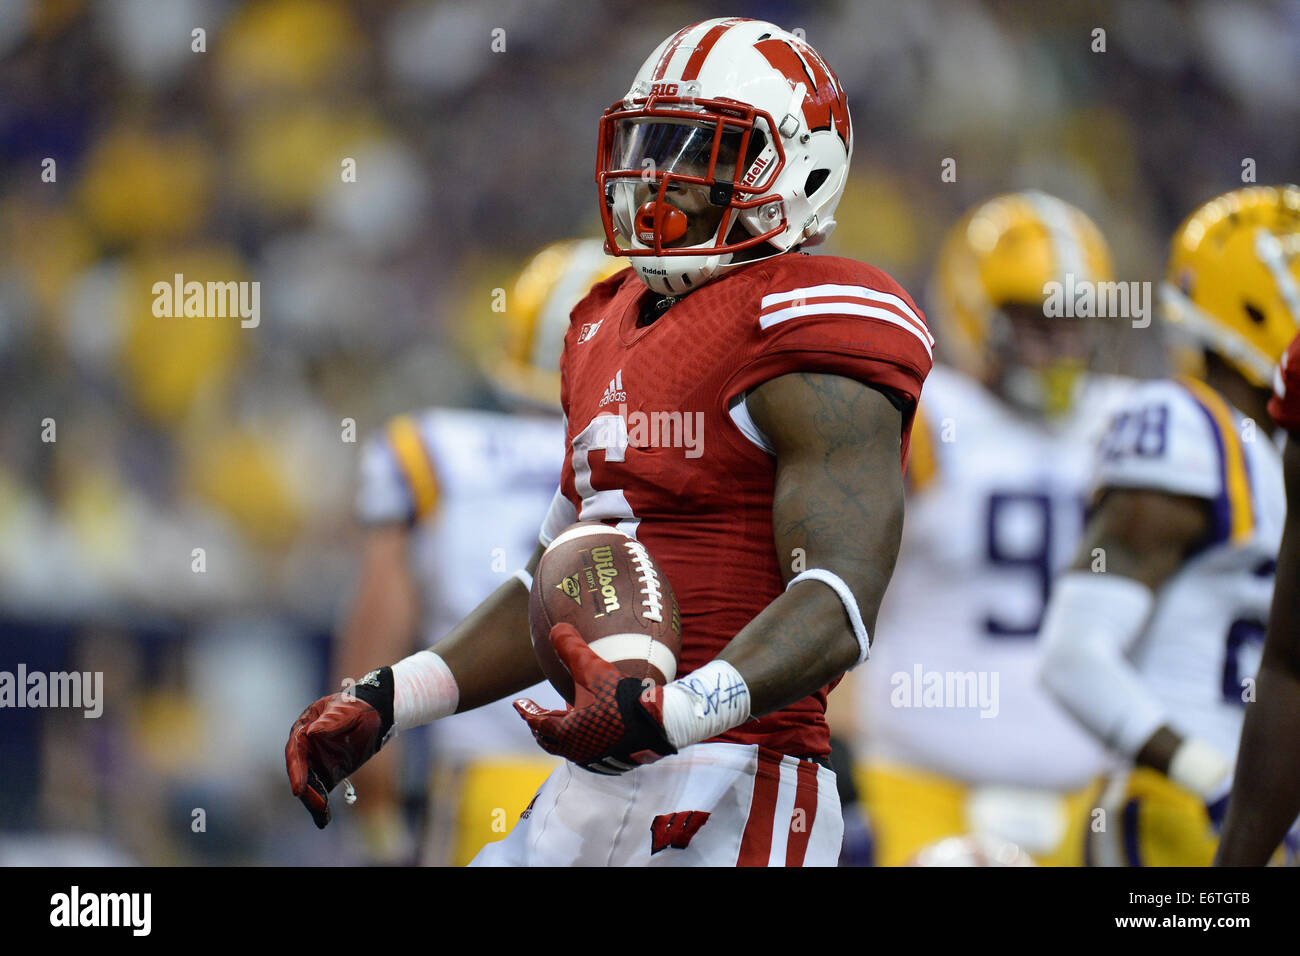 Houston, Texas, USA. 30th Aug, 2014. Wisconsin Badgers running back Corey Clement (6) celebrates a touchdown during - Stock Image